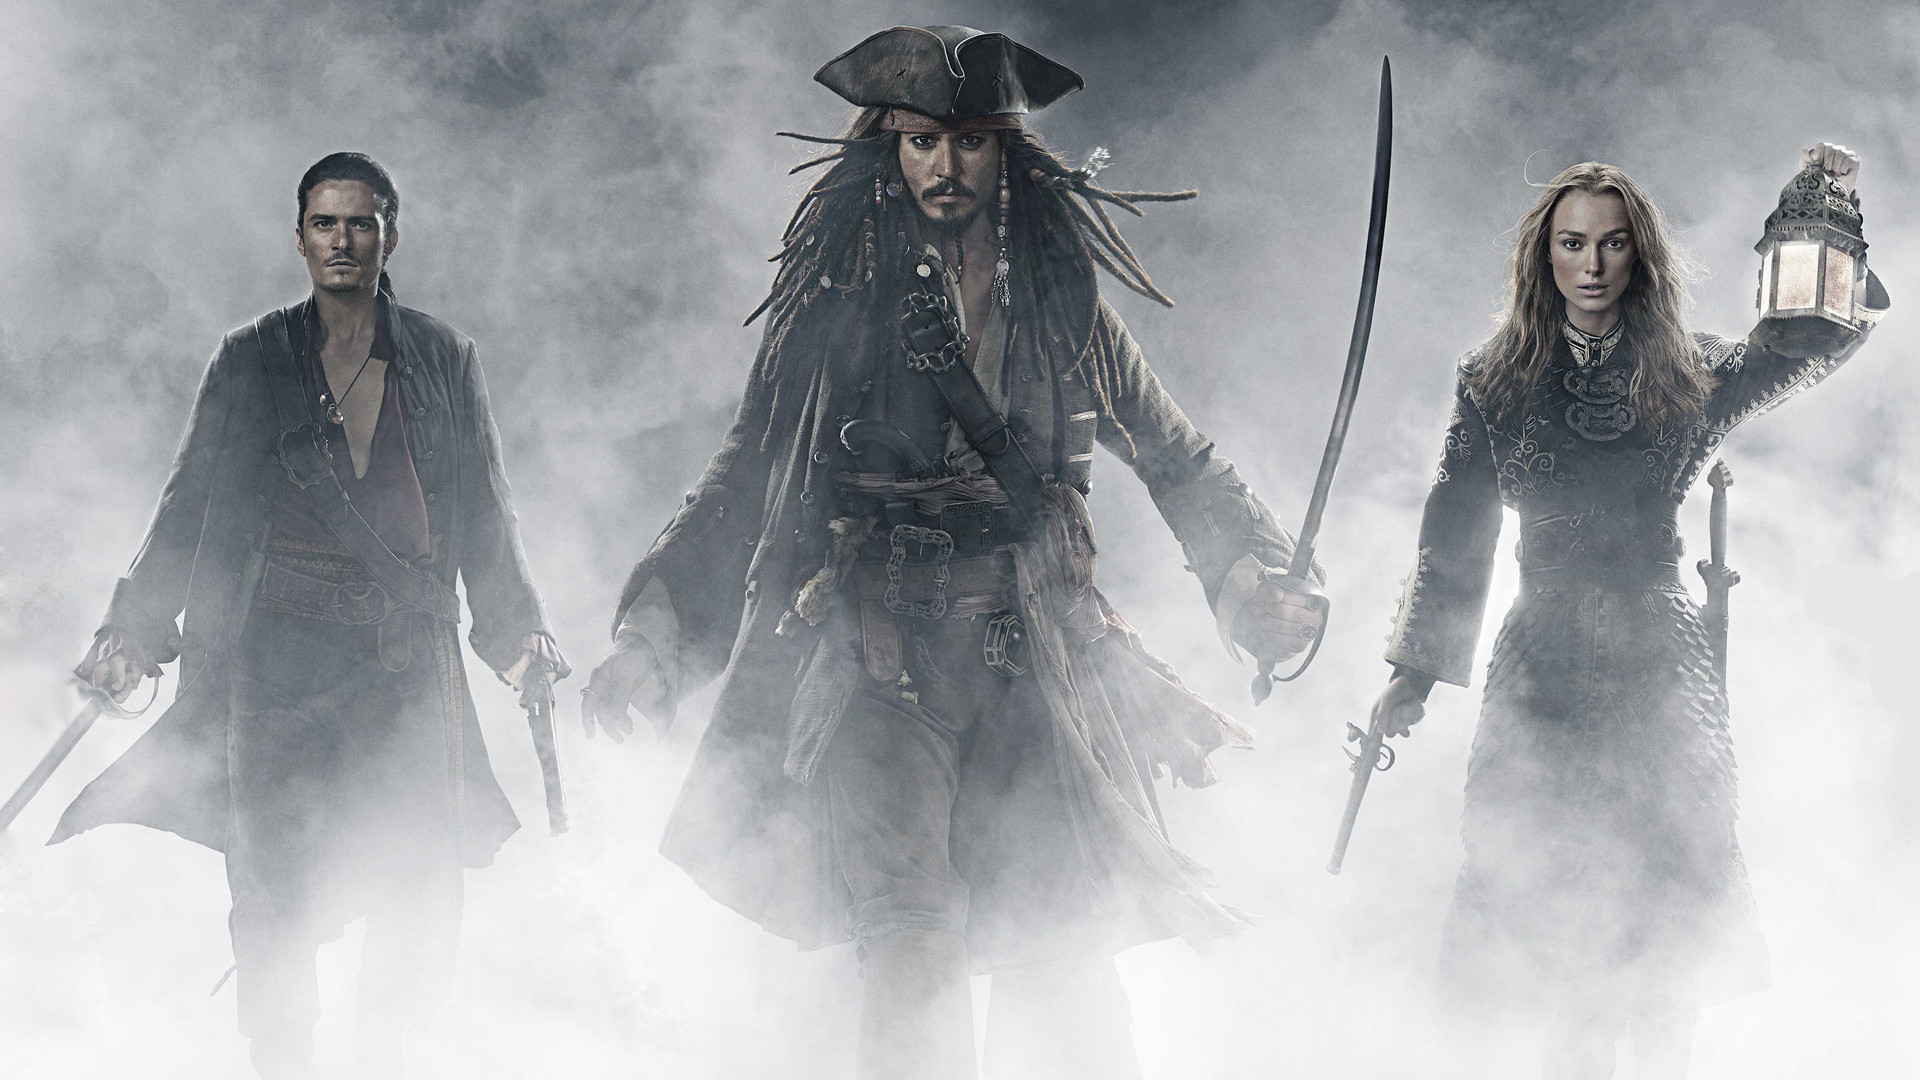 Pirates of the caribbean hd wallpapers for desktop download - Pirates of the caribbean images hd ...